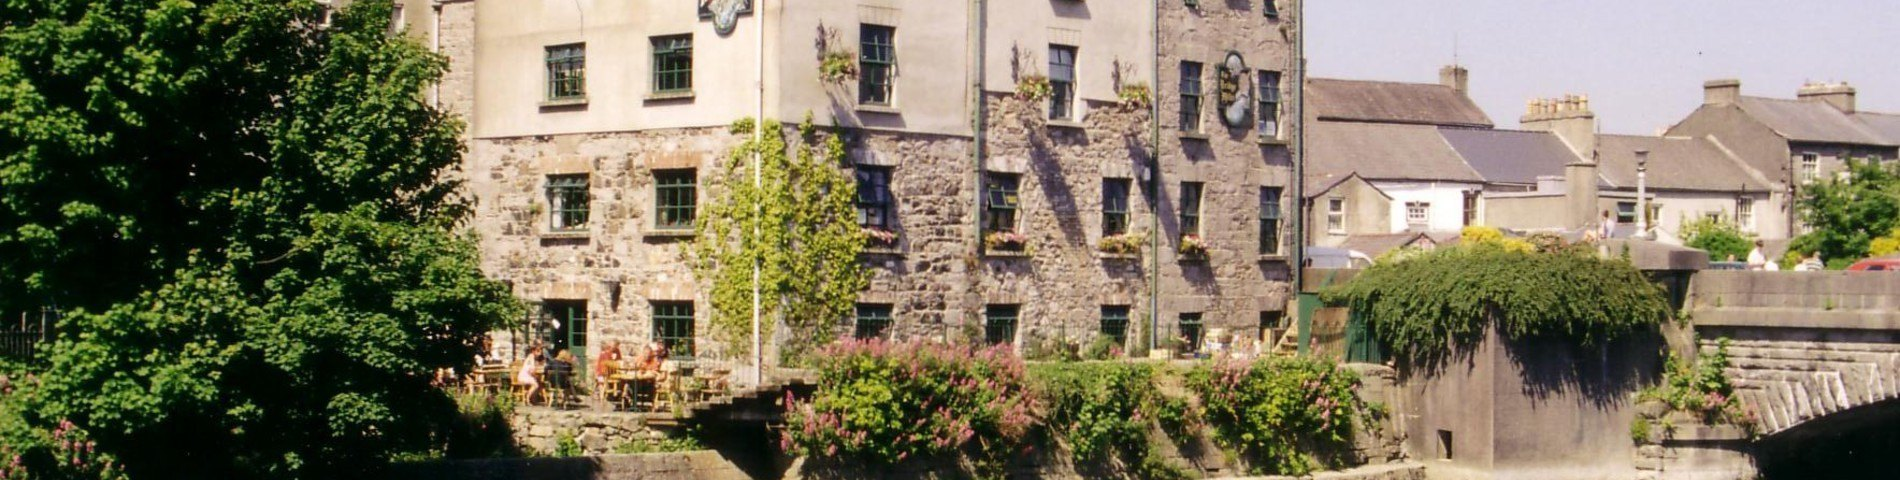 Bridge Mills Galway Language Centre foto 1